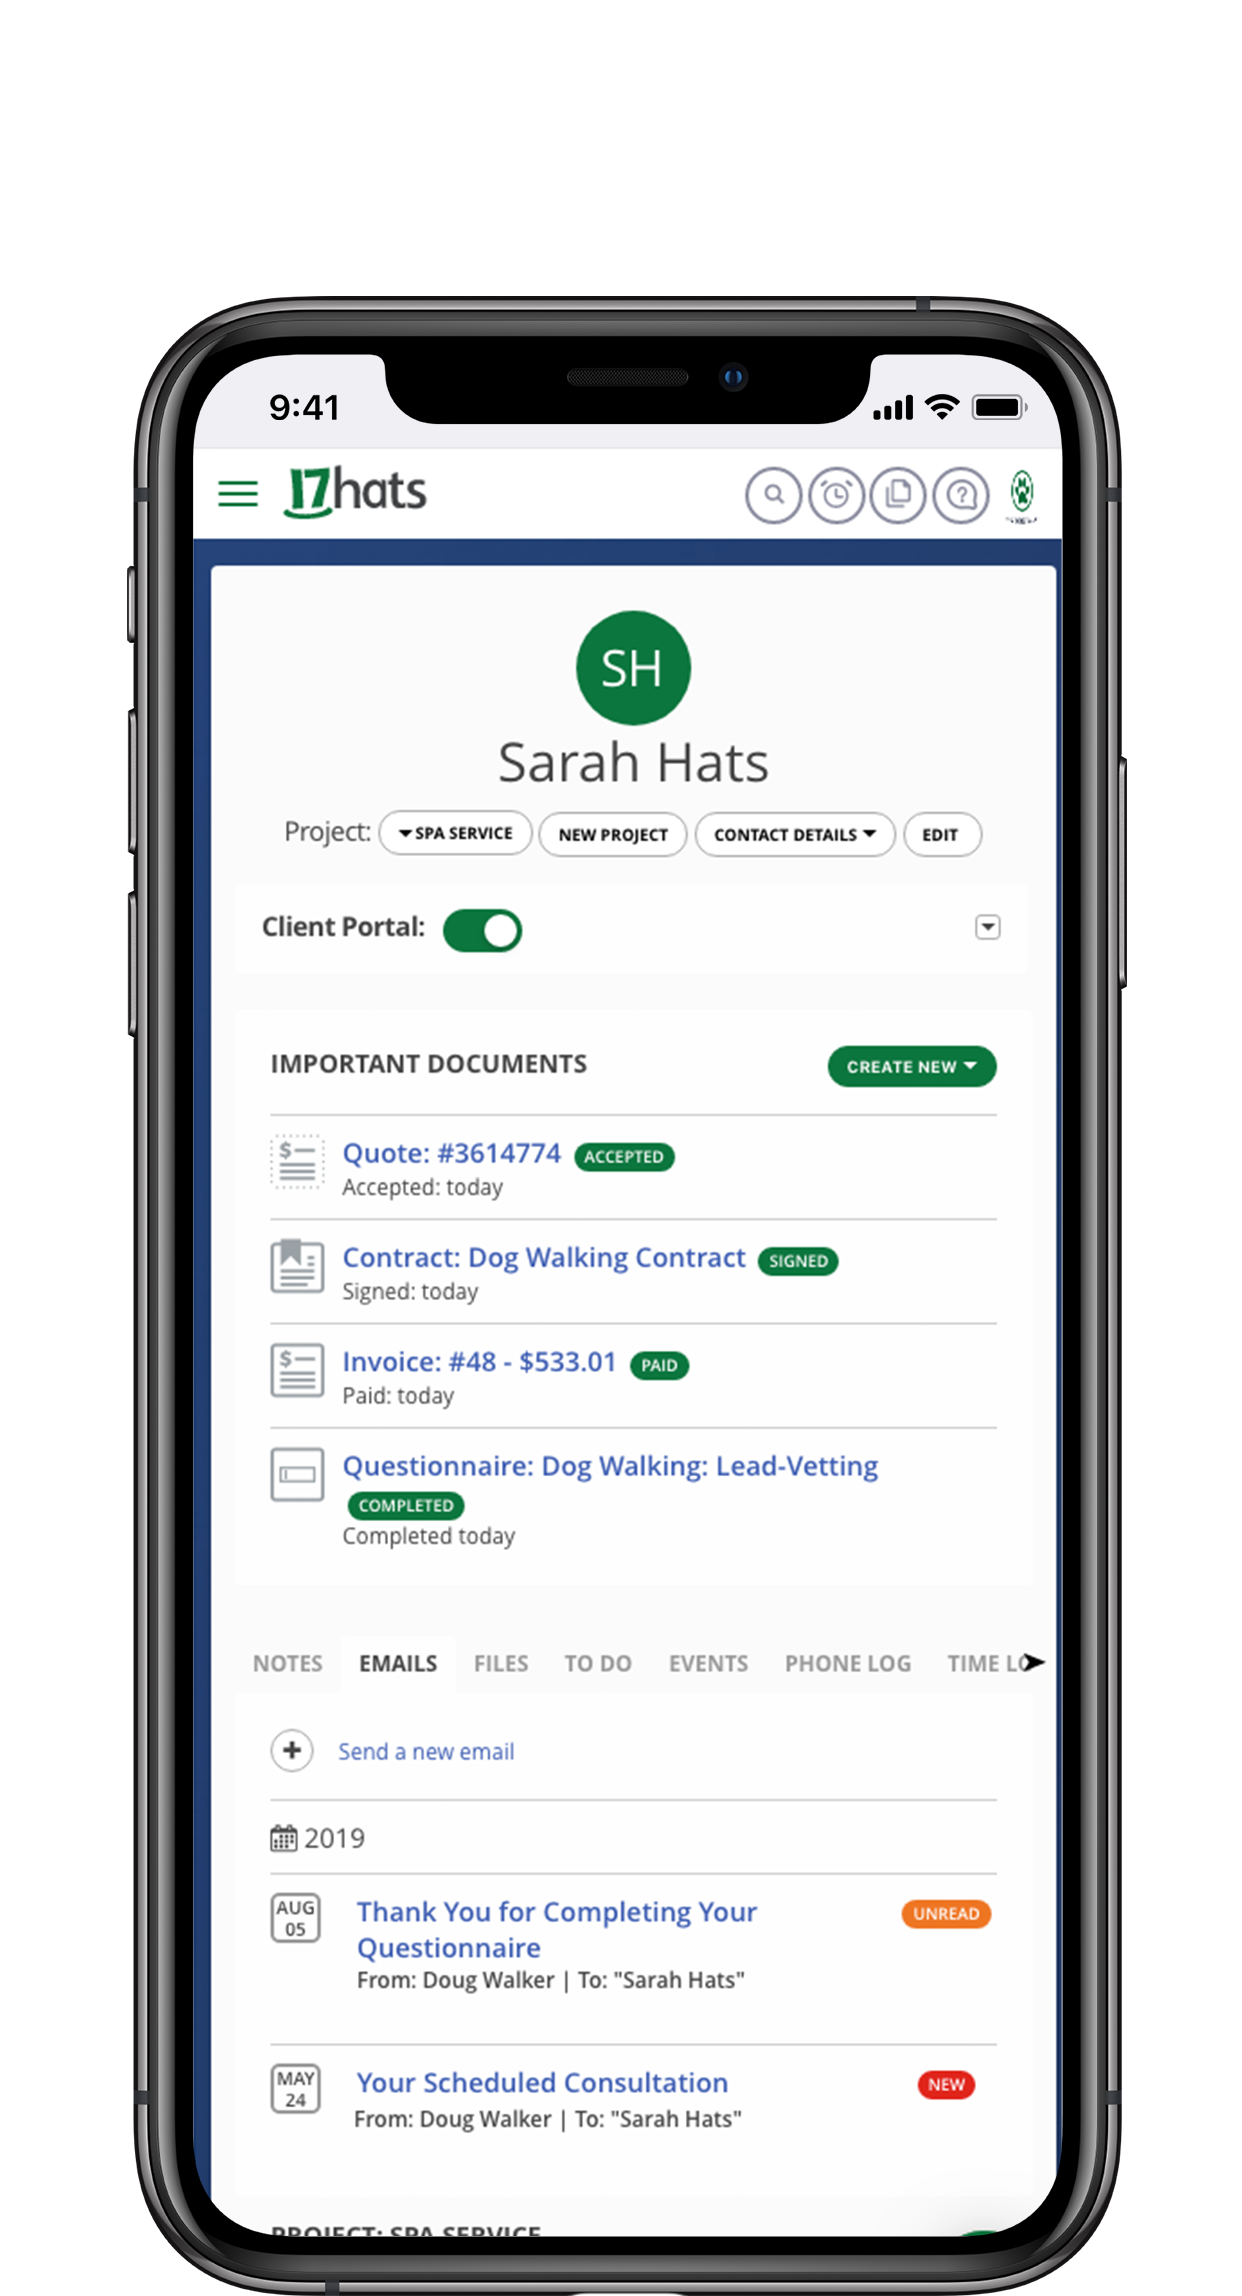 17hats Mobile App for Android and Apple